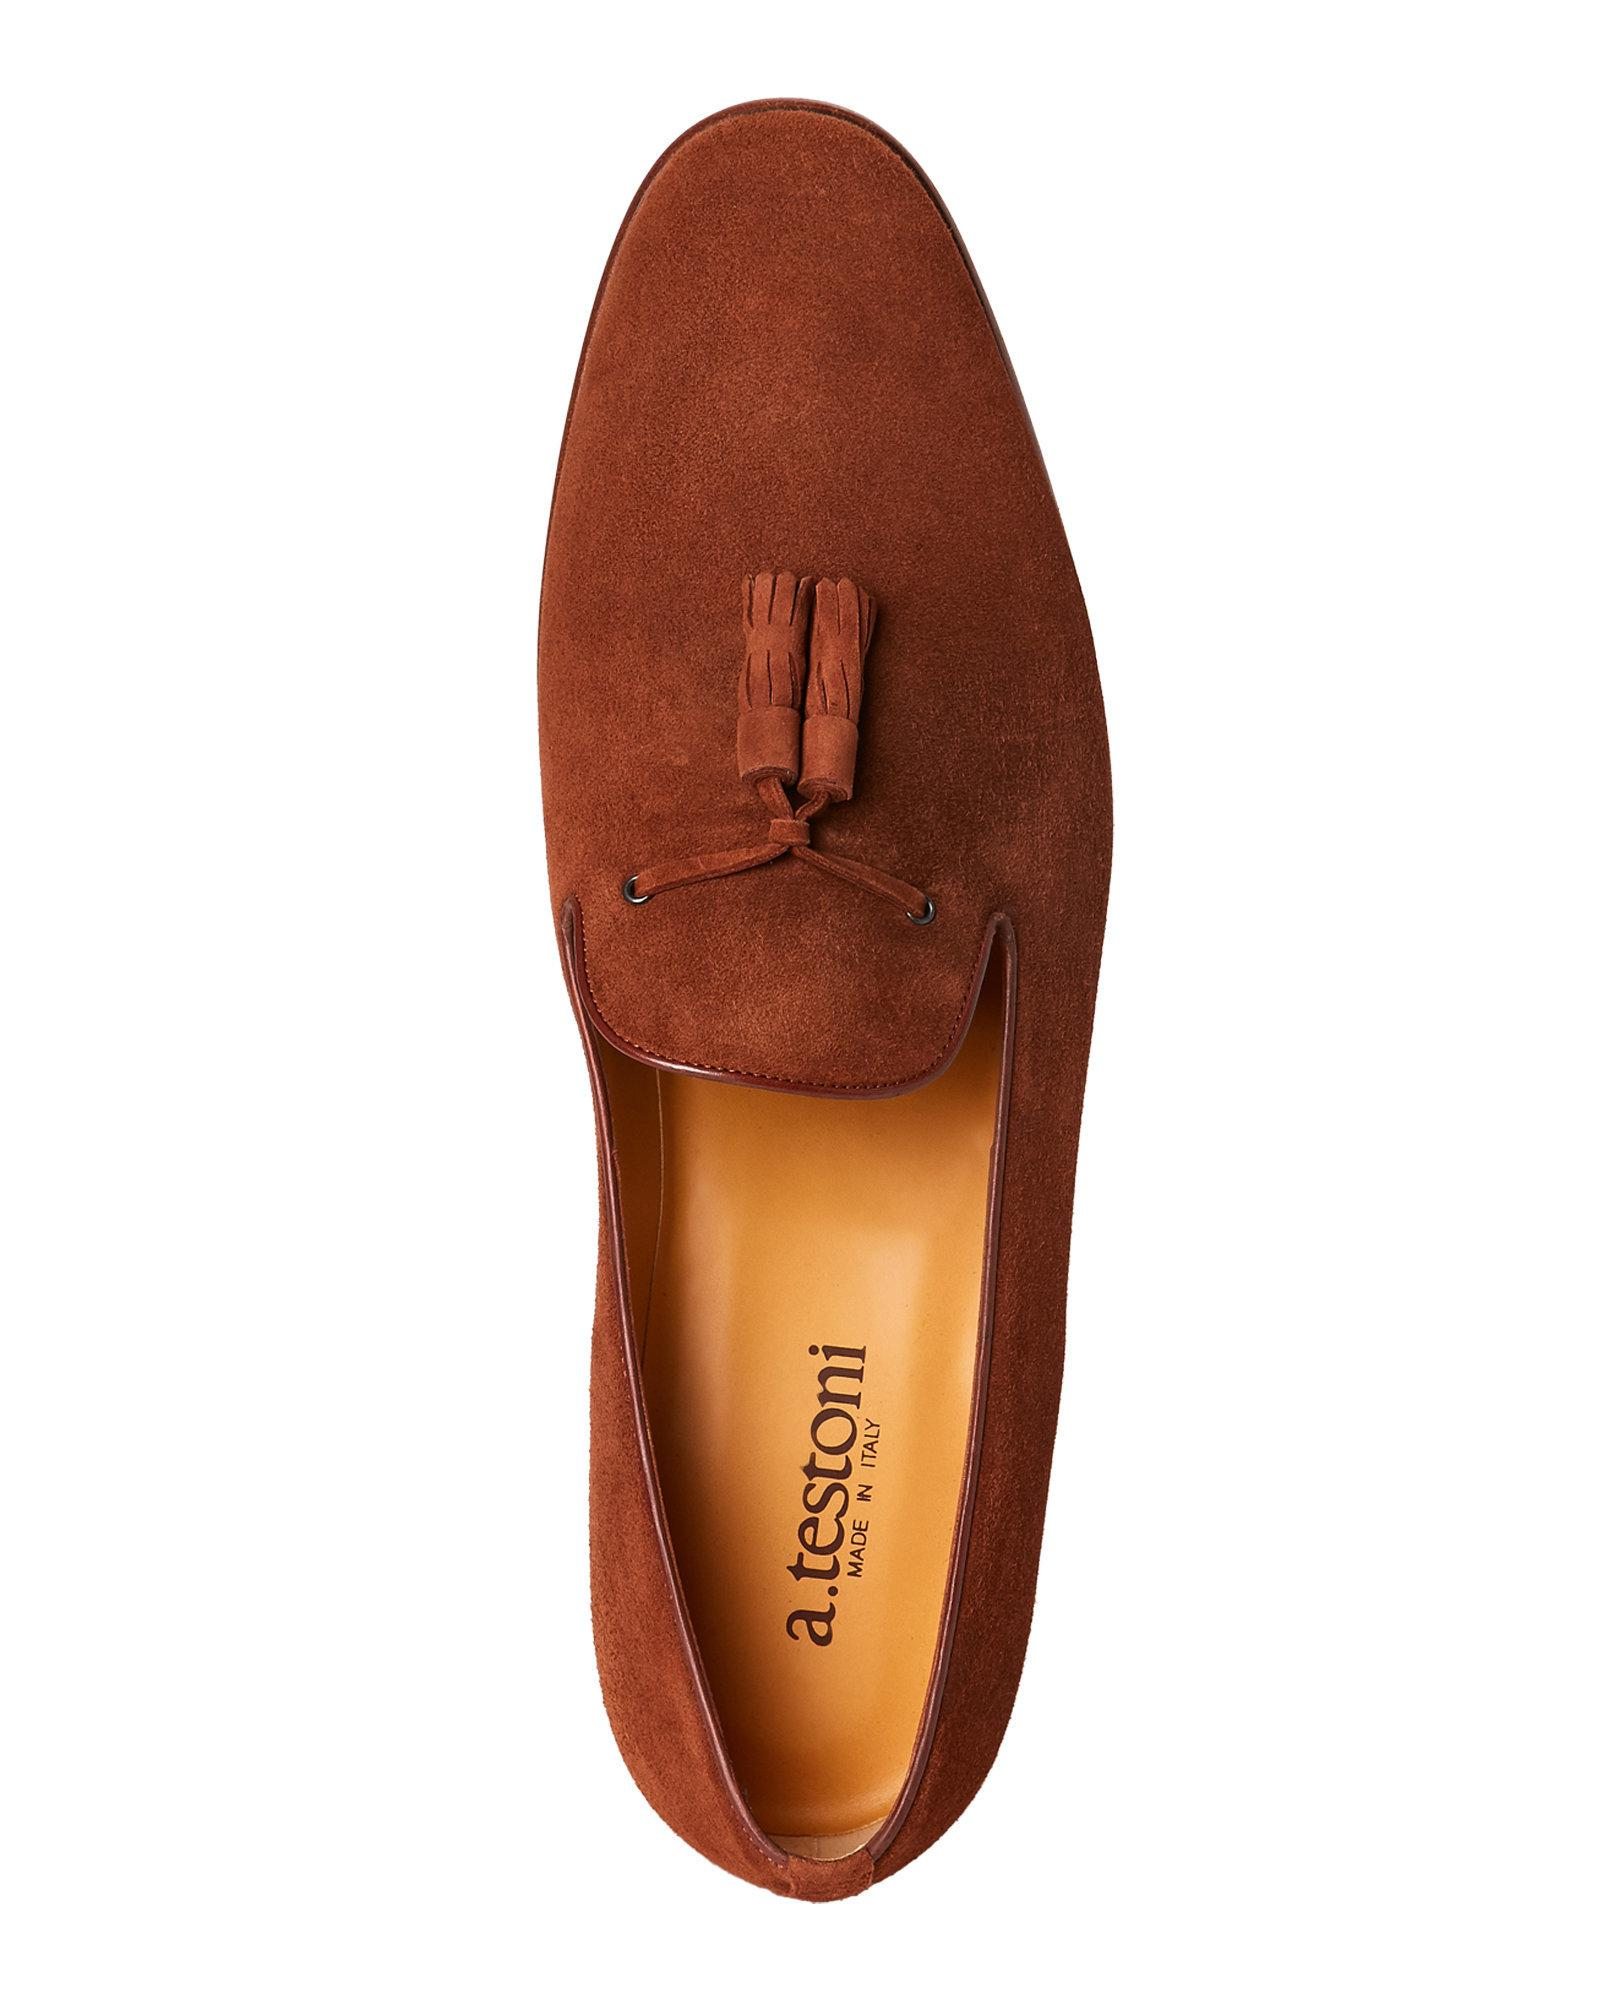 b1c853a93a9 Lyst - A.Testoni Caramel Suede Tasseled Smoking Loafers in Brown for Men